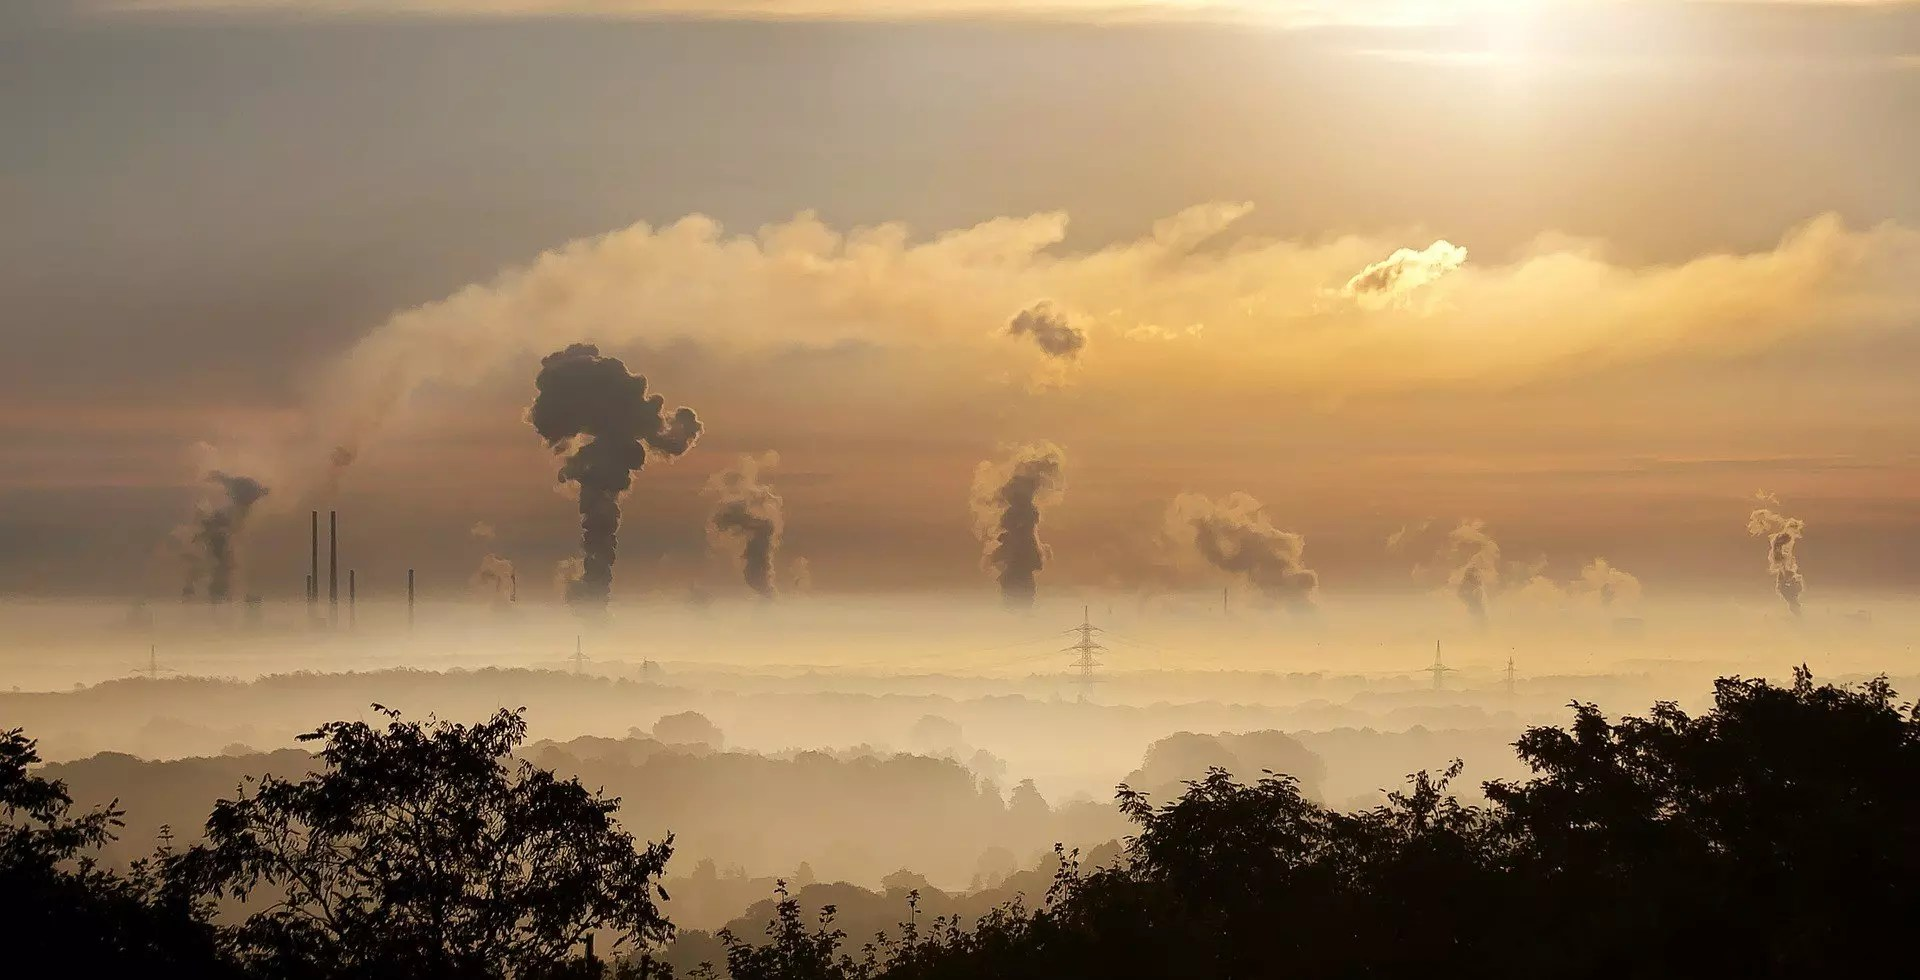 Air pollution linked to nearly 400,000 premature deaths in EU per year!